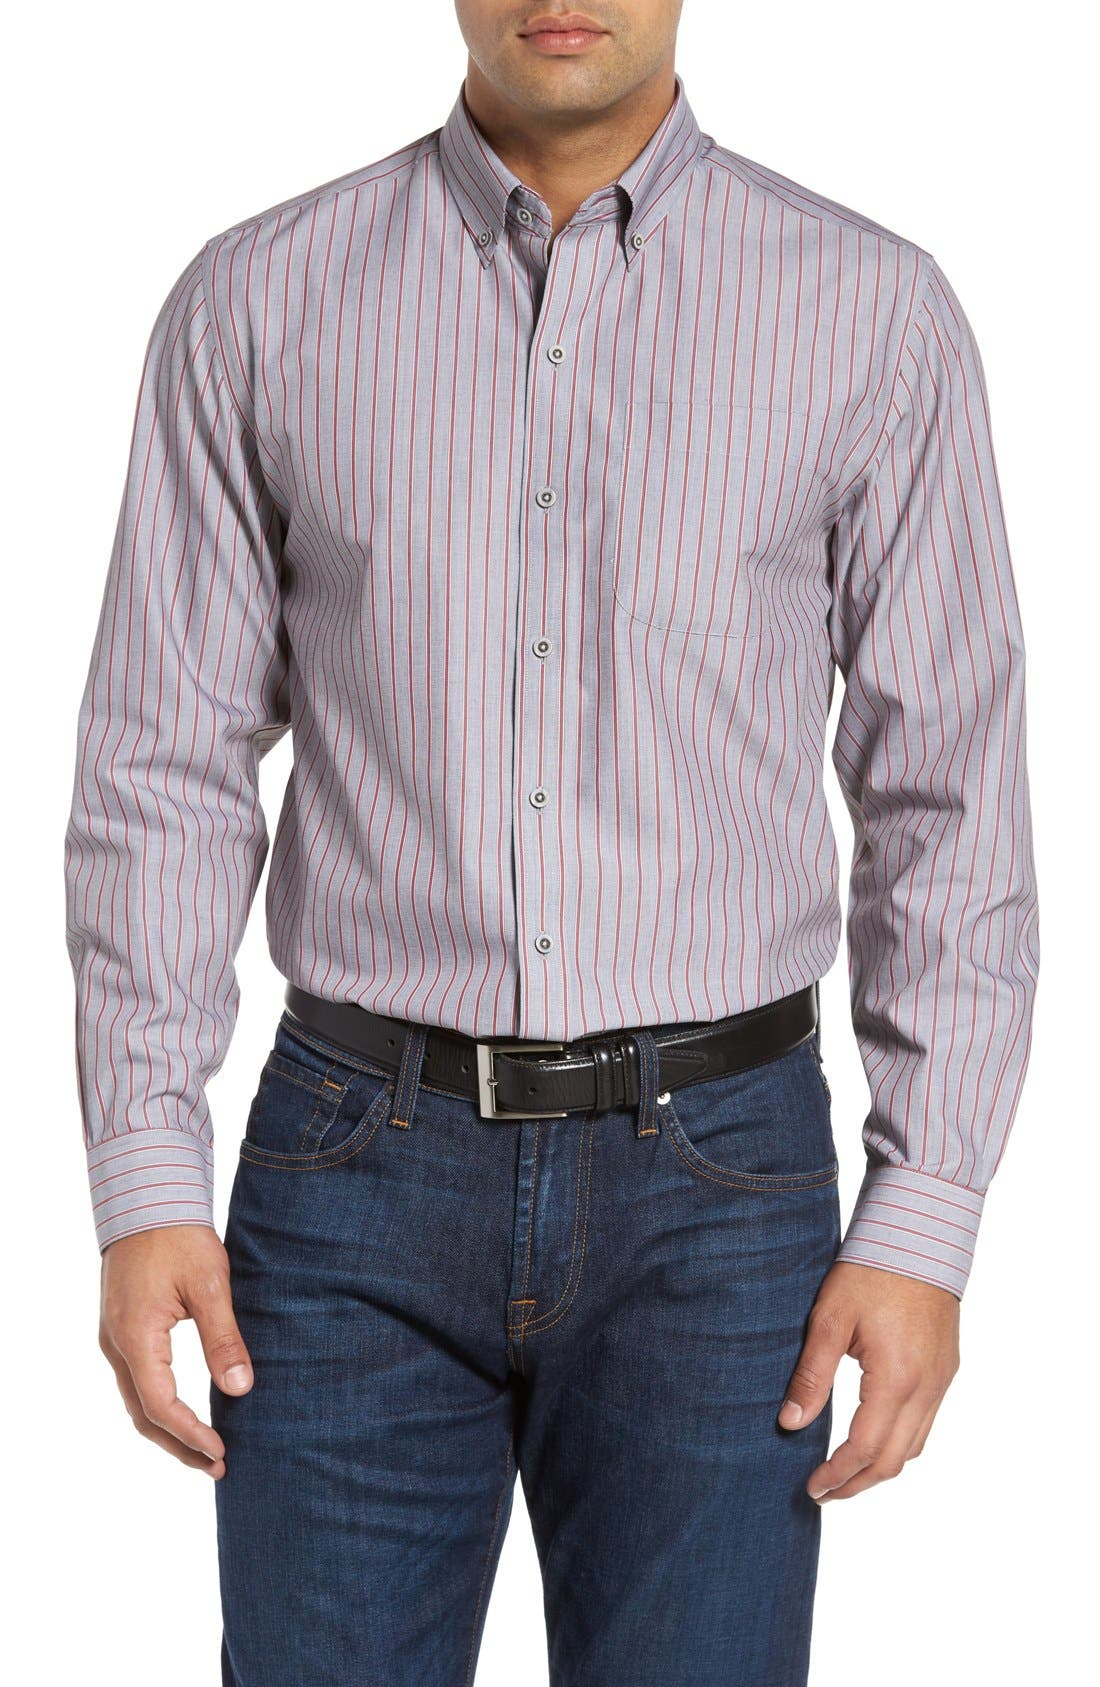 Alternate Image 1 Selected - Cutter & Buck 'Peak' Classic Fit Wrinkle Free Stripe Sport Shirt